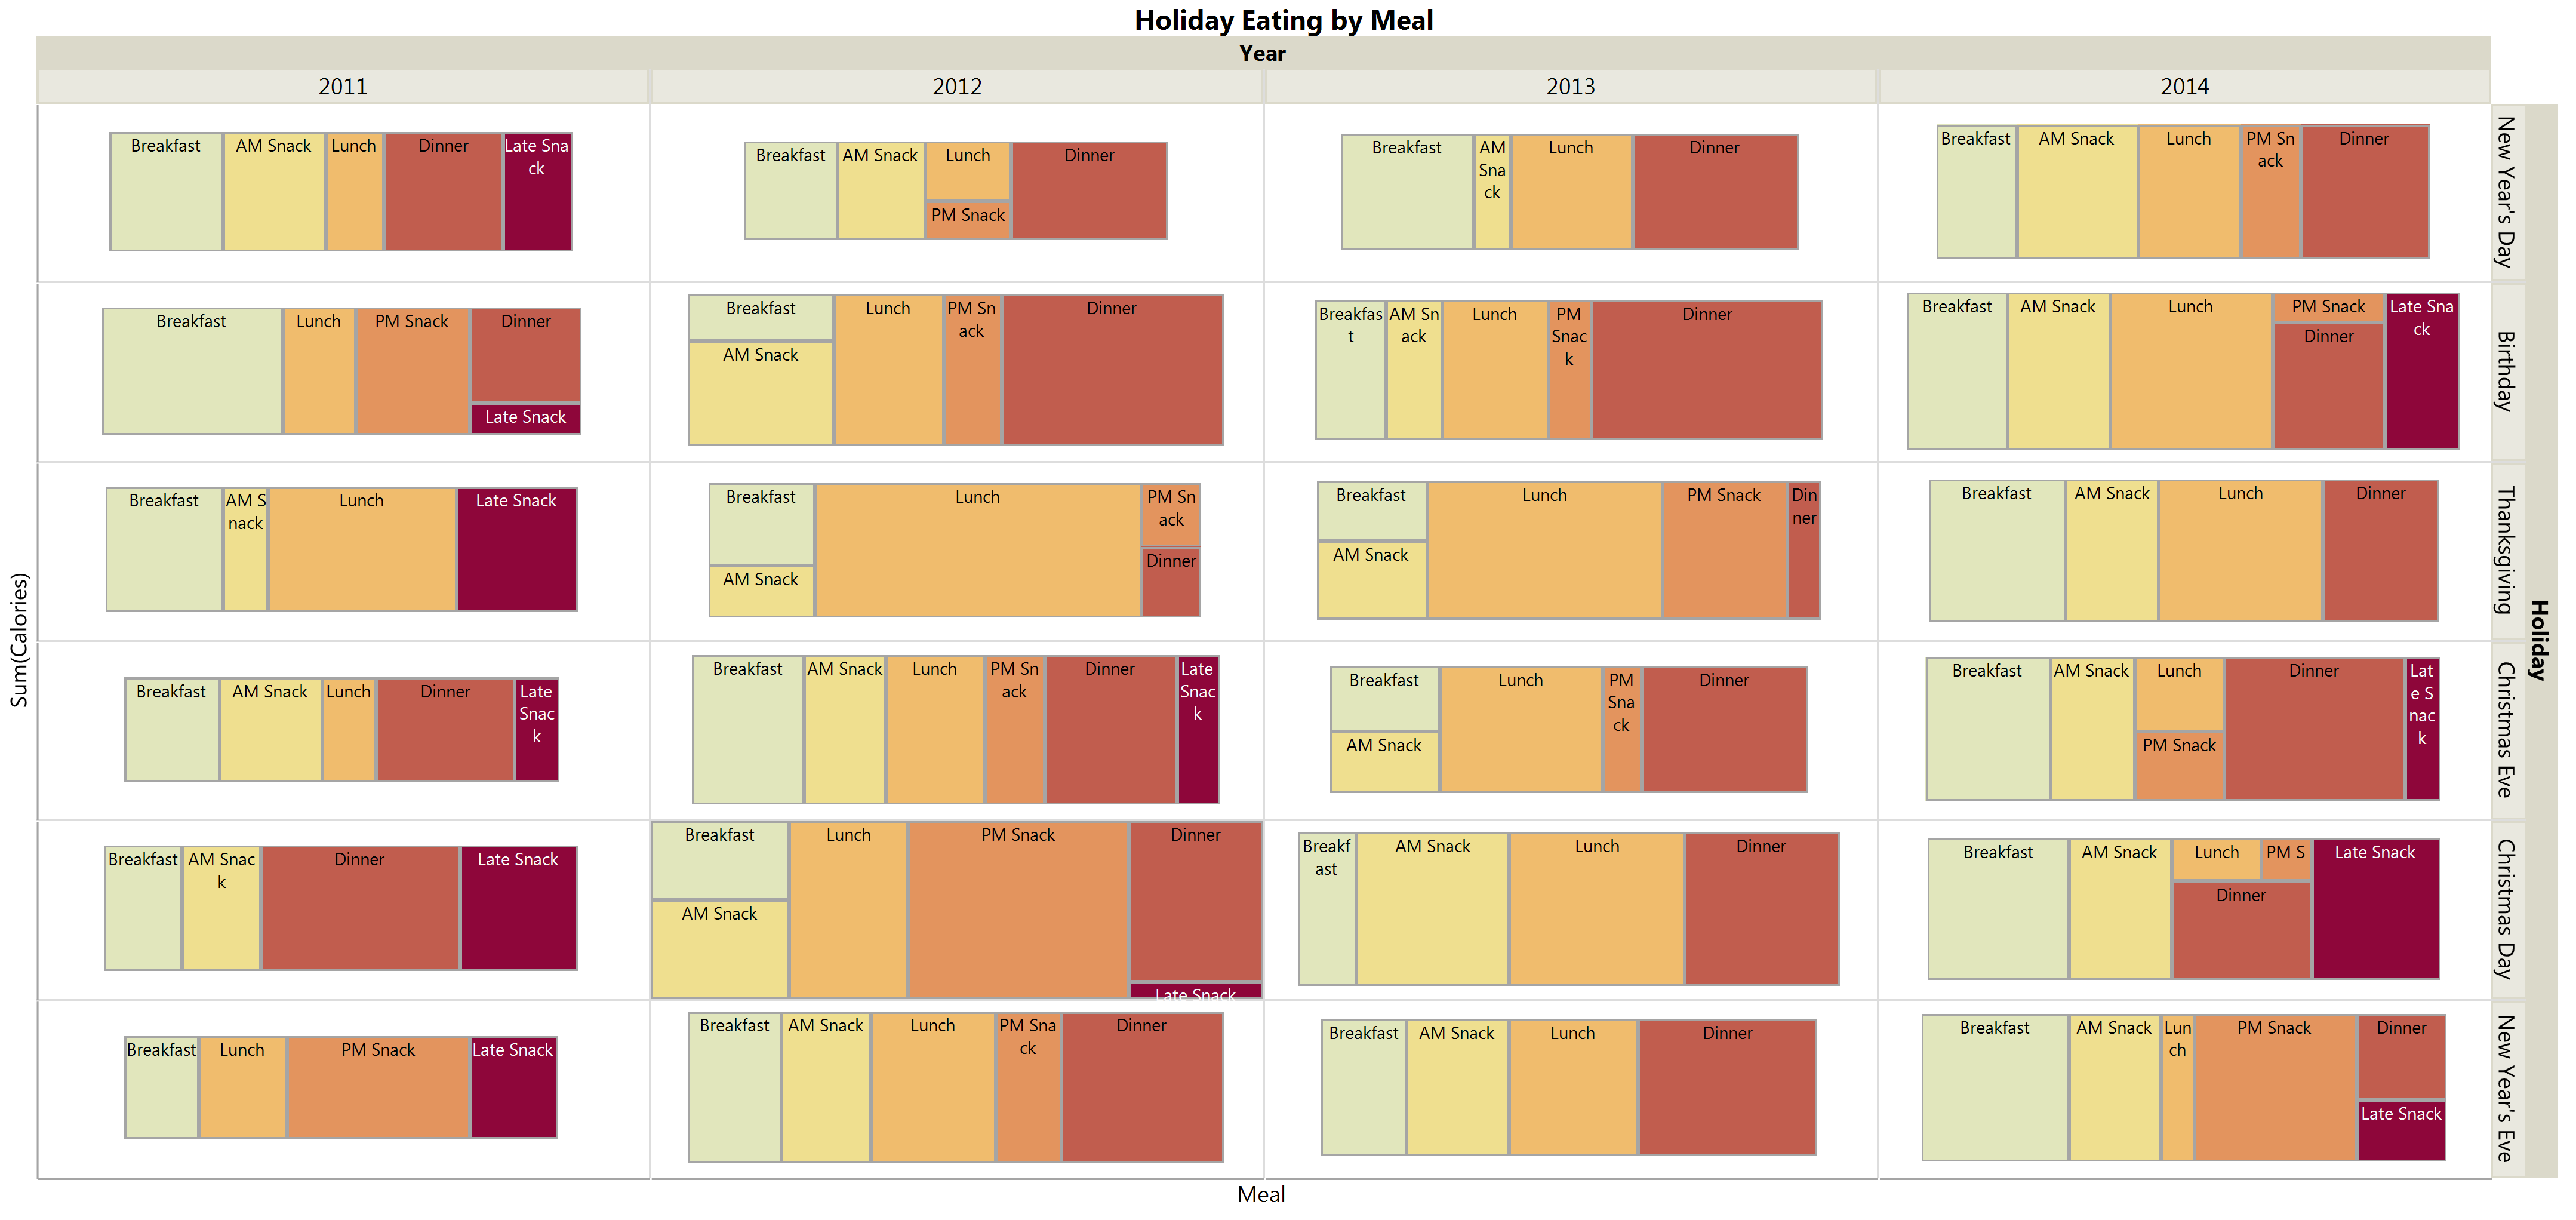 Calories logged by meal depended on the timing of the big holiday meal.